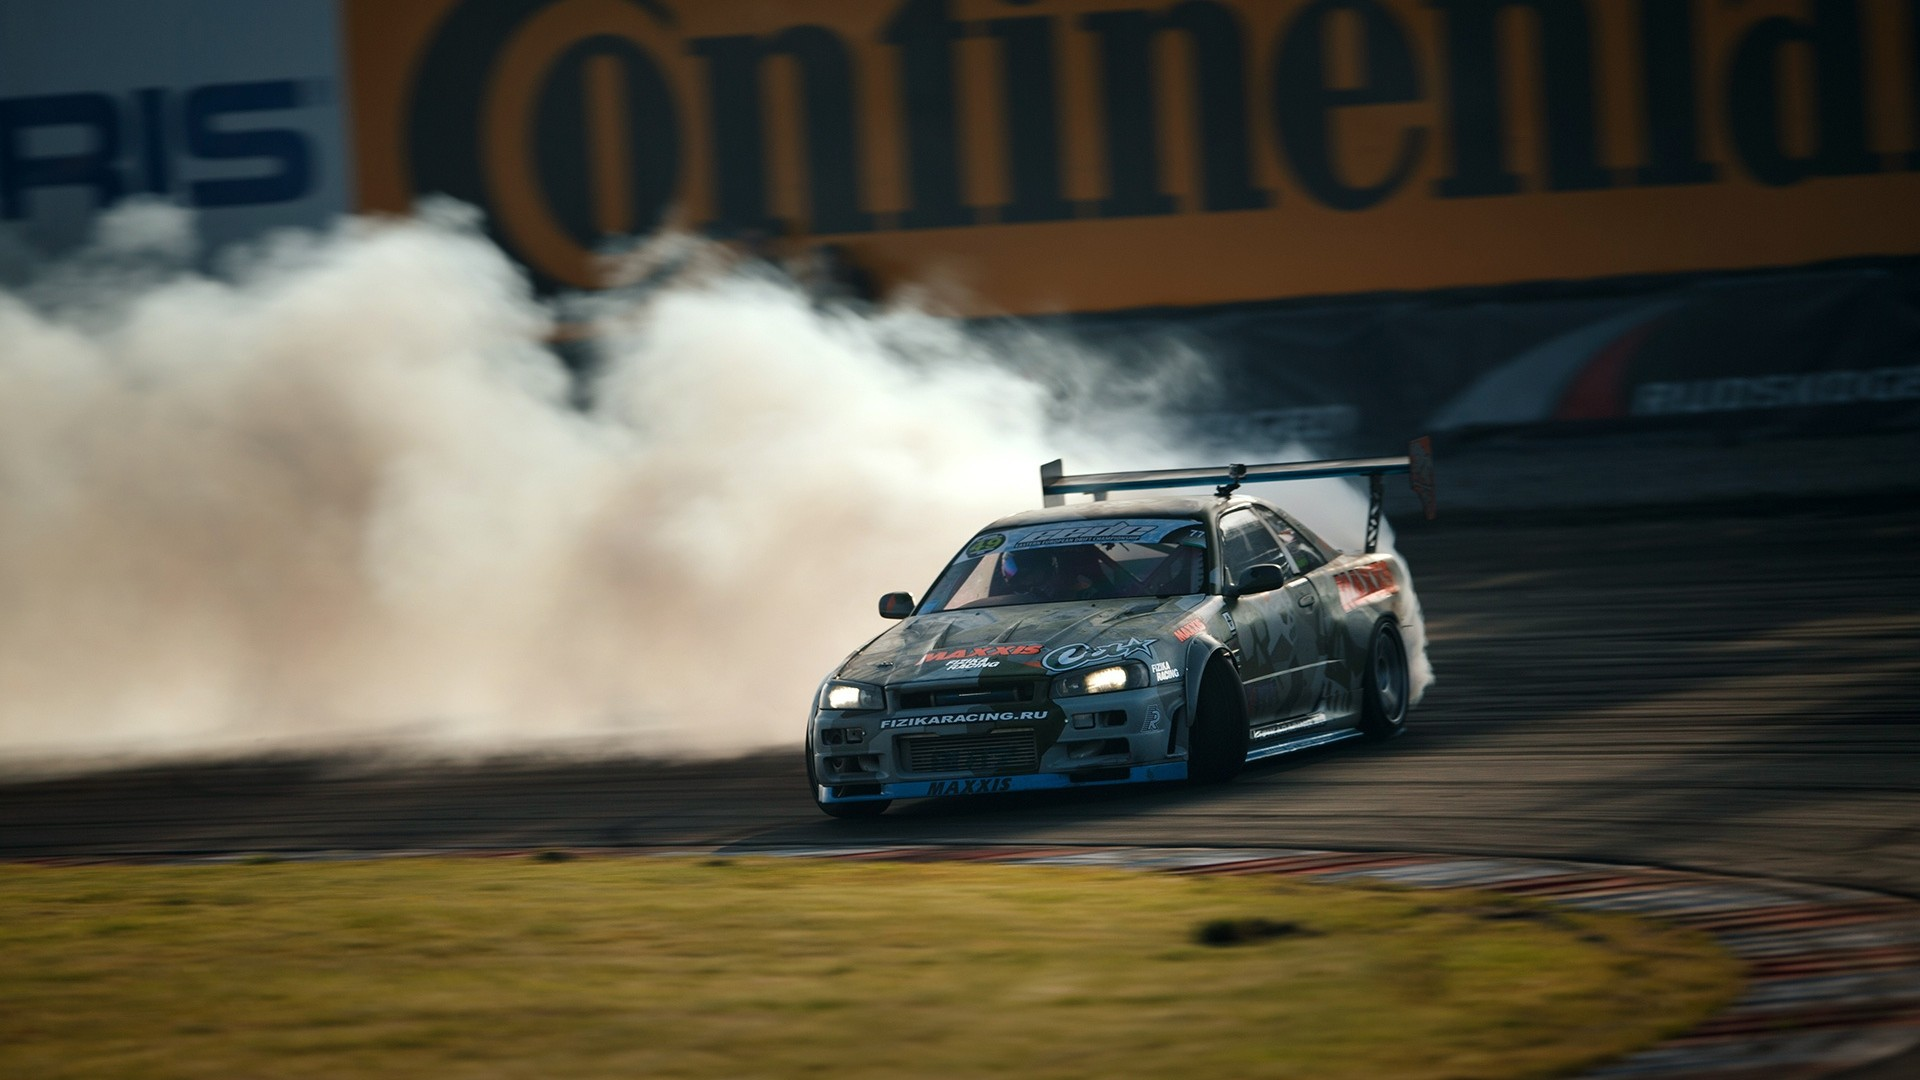 Beautiful 1920x1200 Rc Drift Cars Background Wallpaper Awesome Ideas